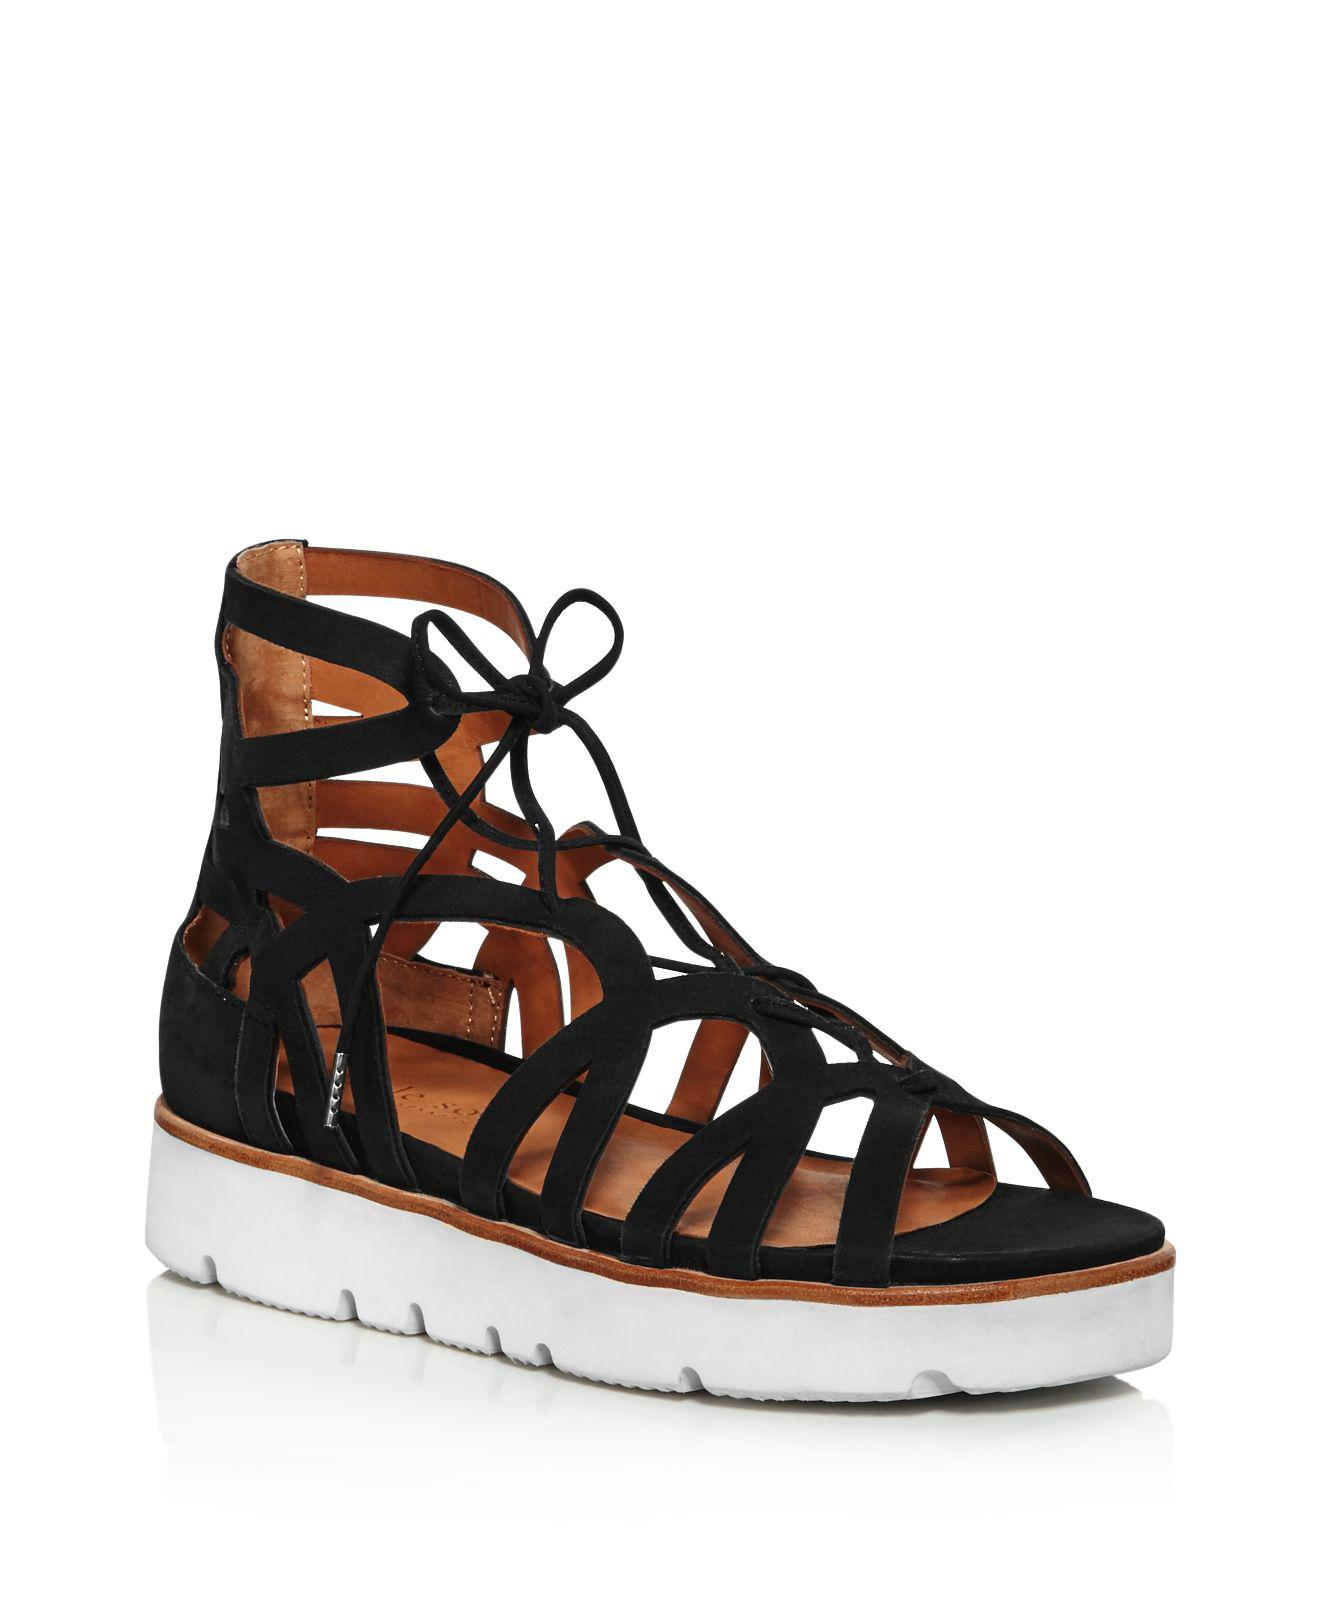 Kenneth Cole Gentle Souls Women's Larina Leather Gladiator Platform Sandals Official Cheap Price IFzejYbdyb